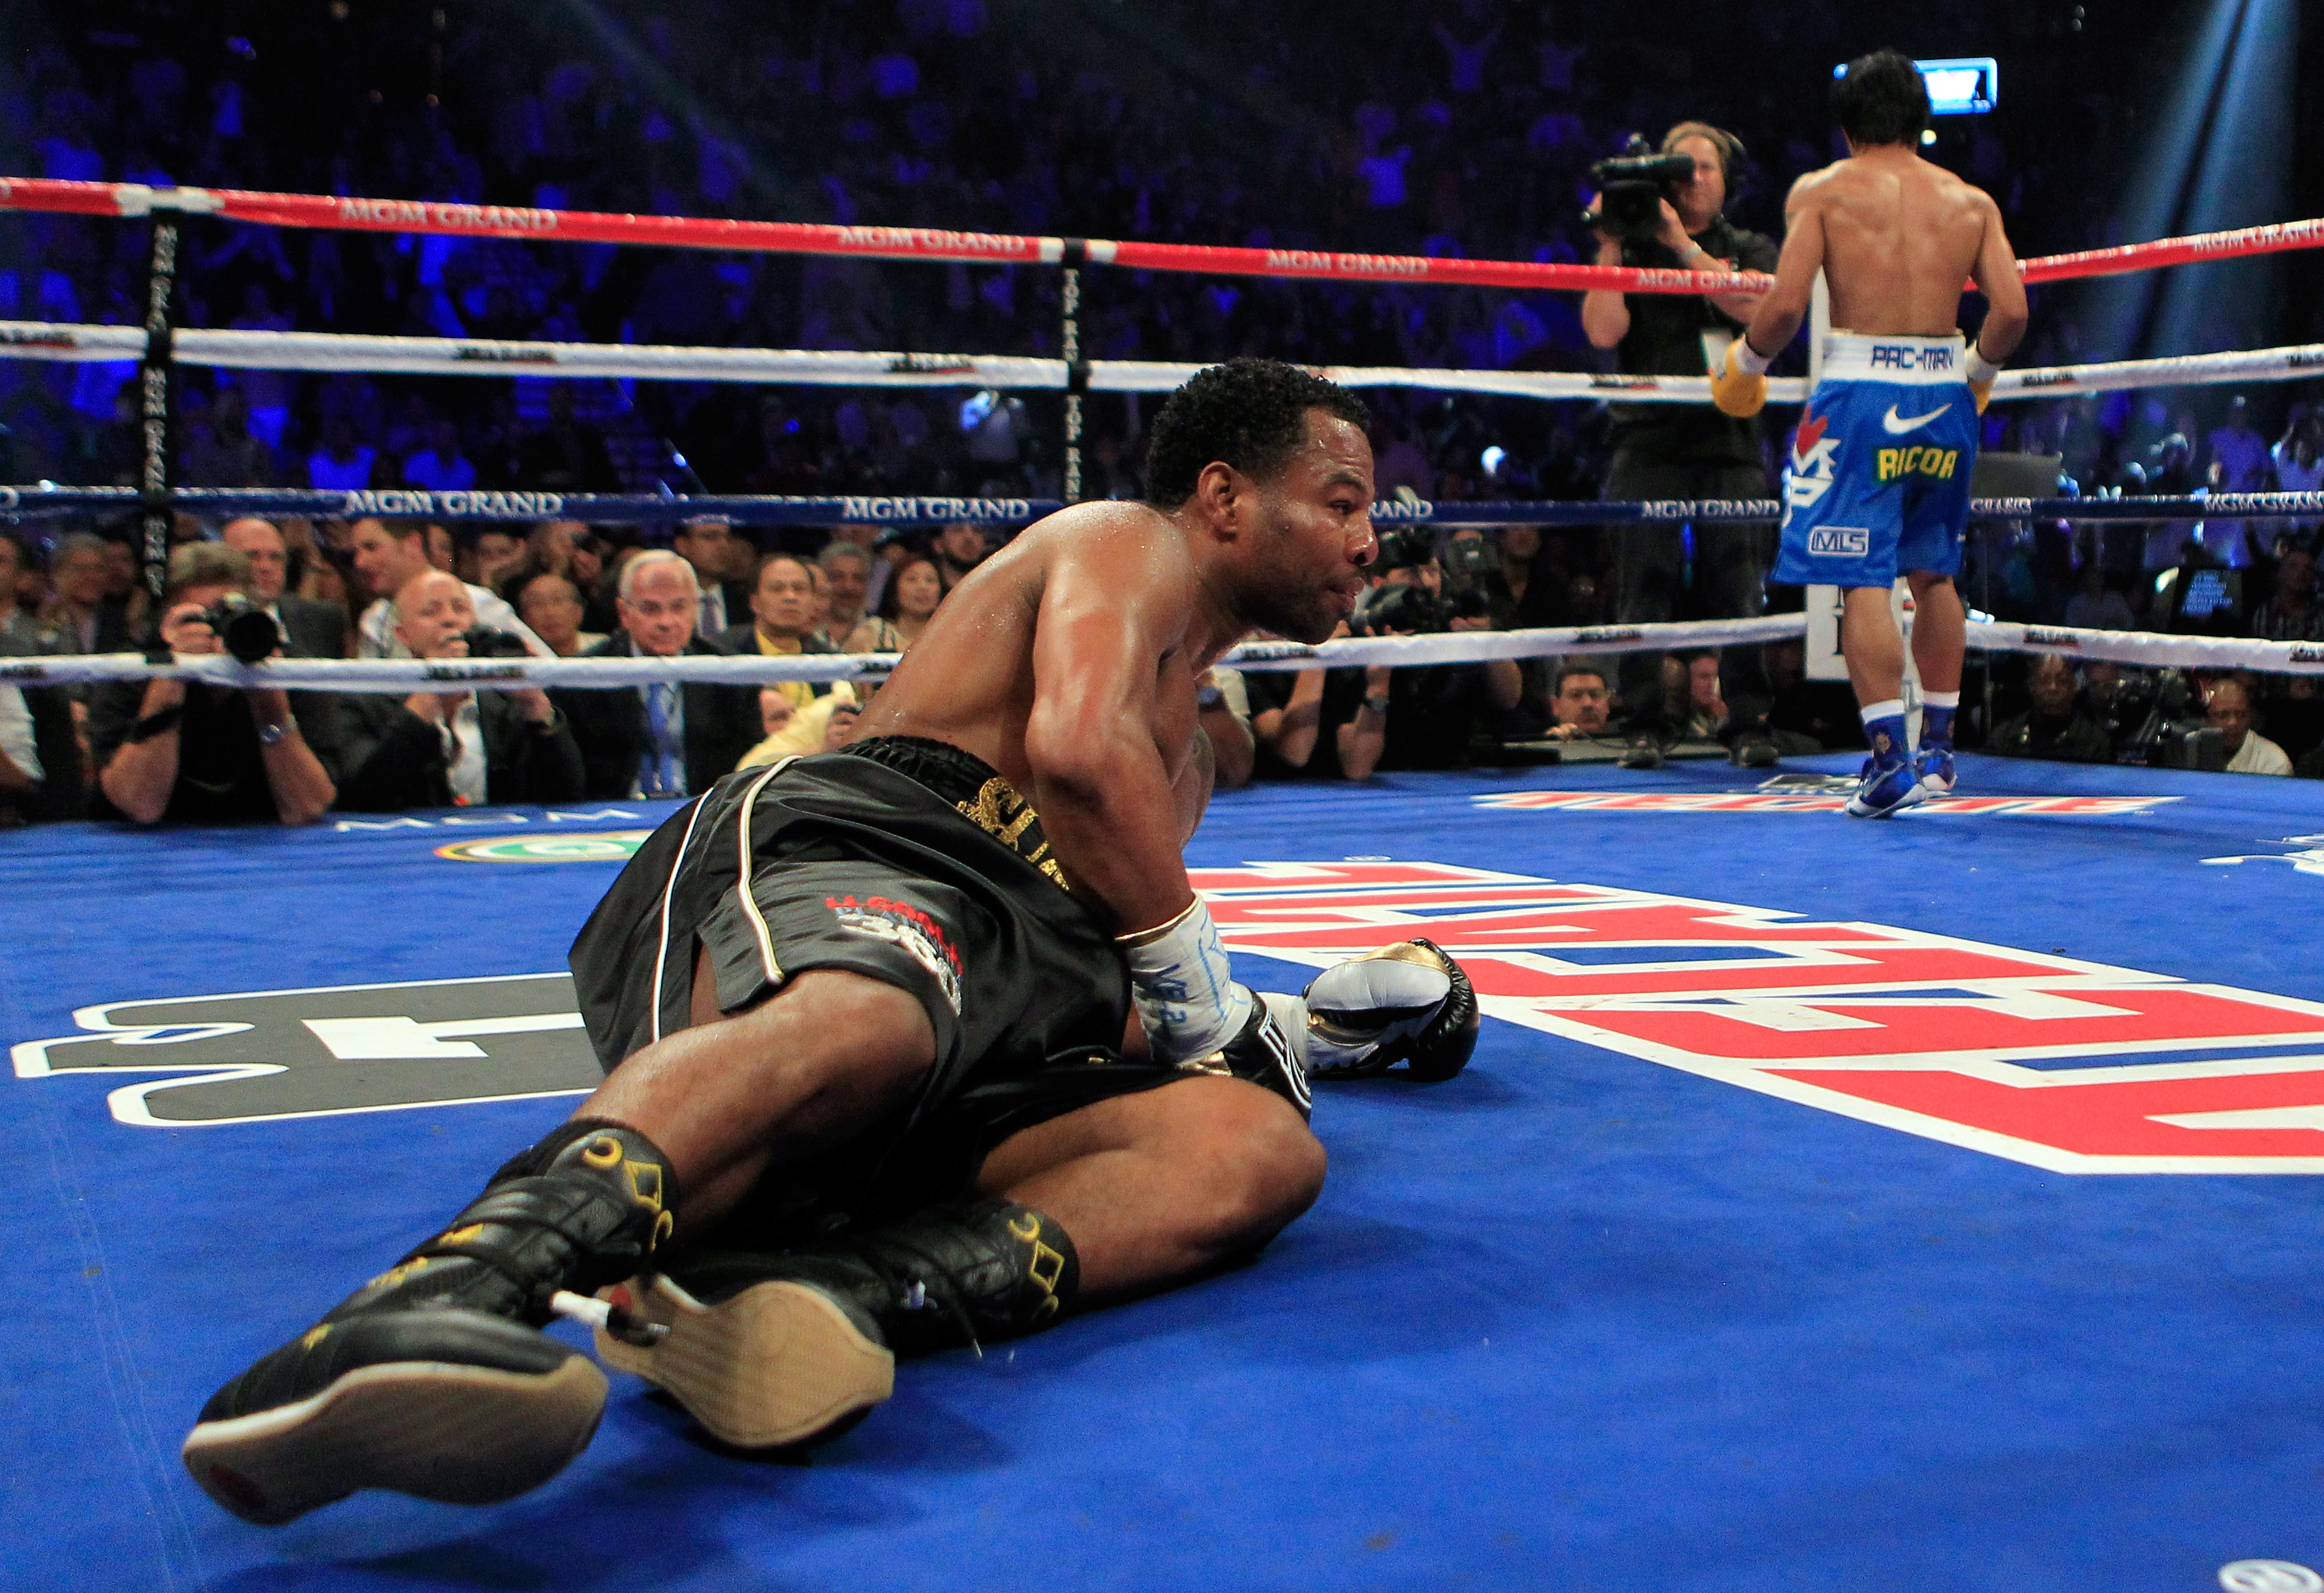 LAS VEGAS, NV - MAY 07:  (L) Shane Mosley is knocked down in the third round by Manny Pacquiao of the Philippines in the WBO welterweight title fight at MGM Grand Garden Arena on May 7, 2011 in Las Vegas, Nevada.  (Photo by Chris Trotman/Getty Images)